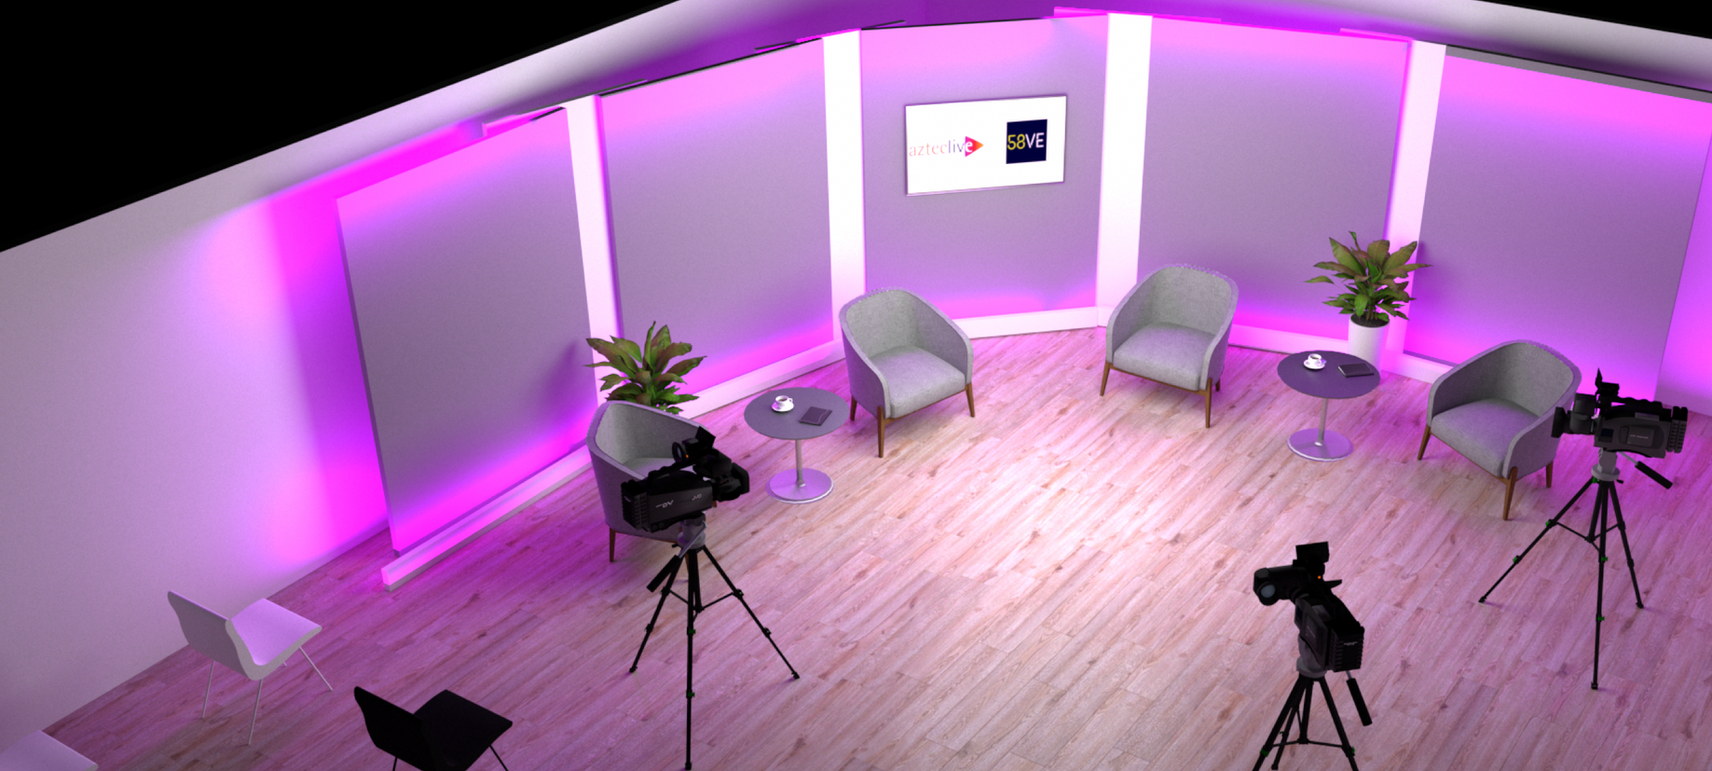 Studio VE standard set ready for panel session with remote contributors